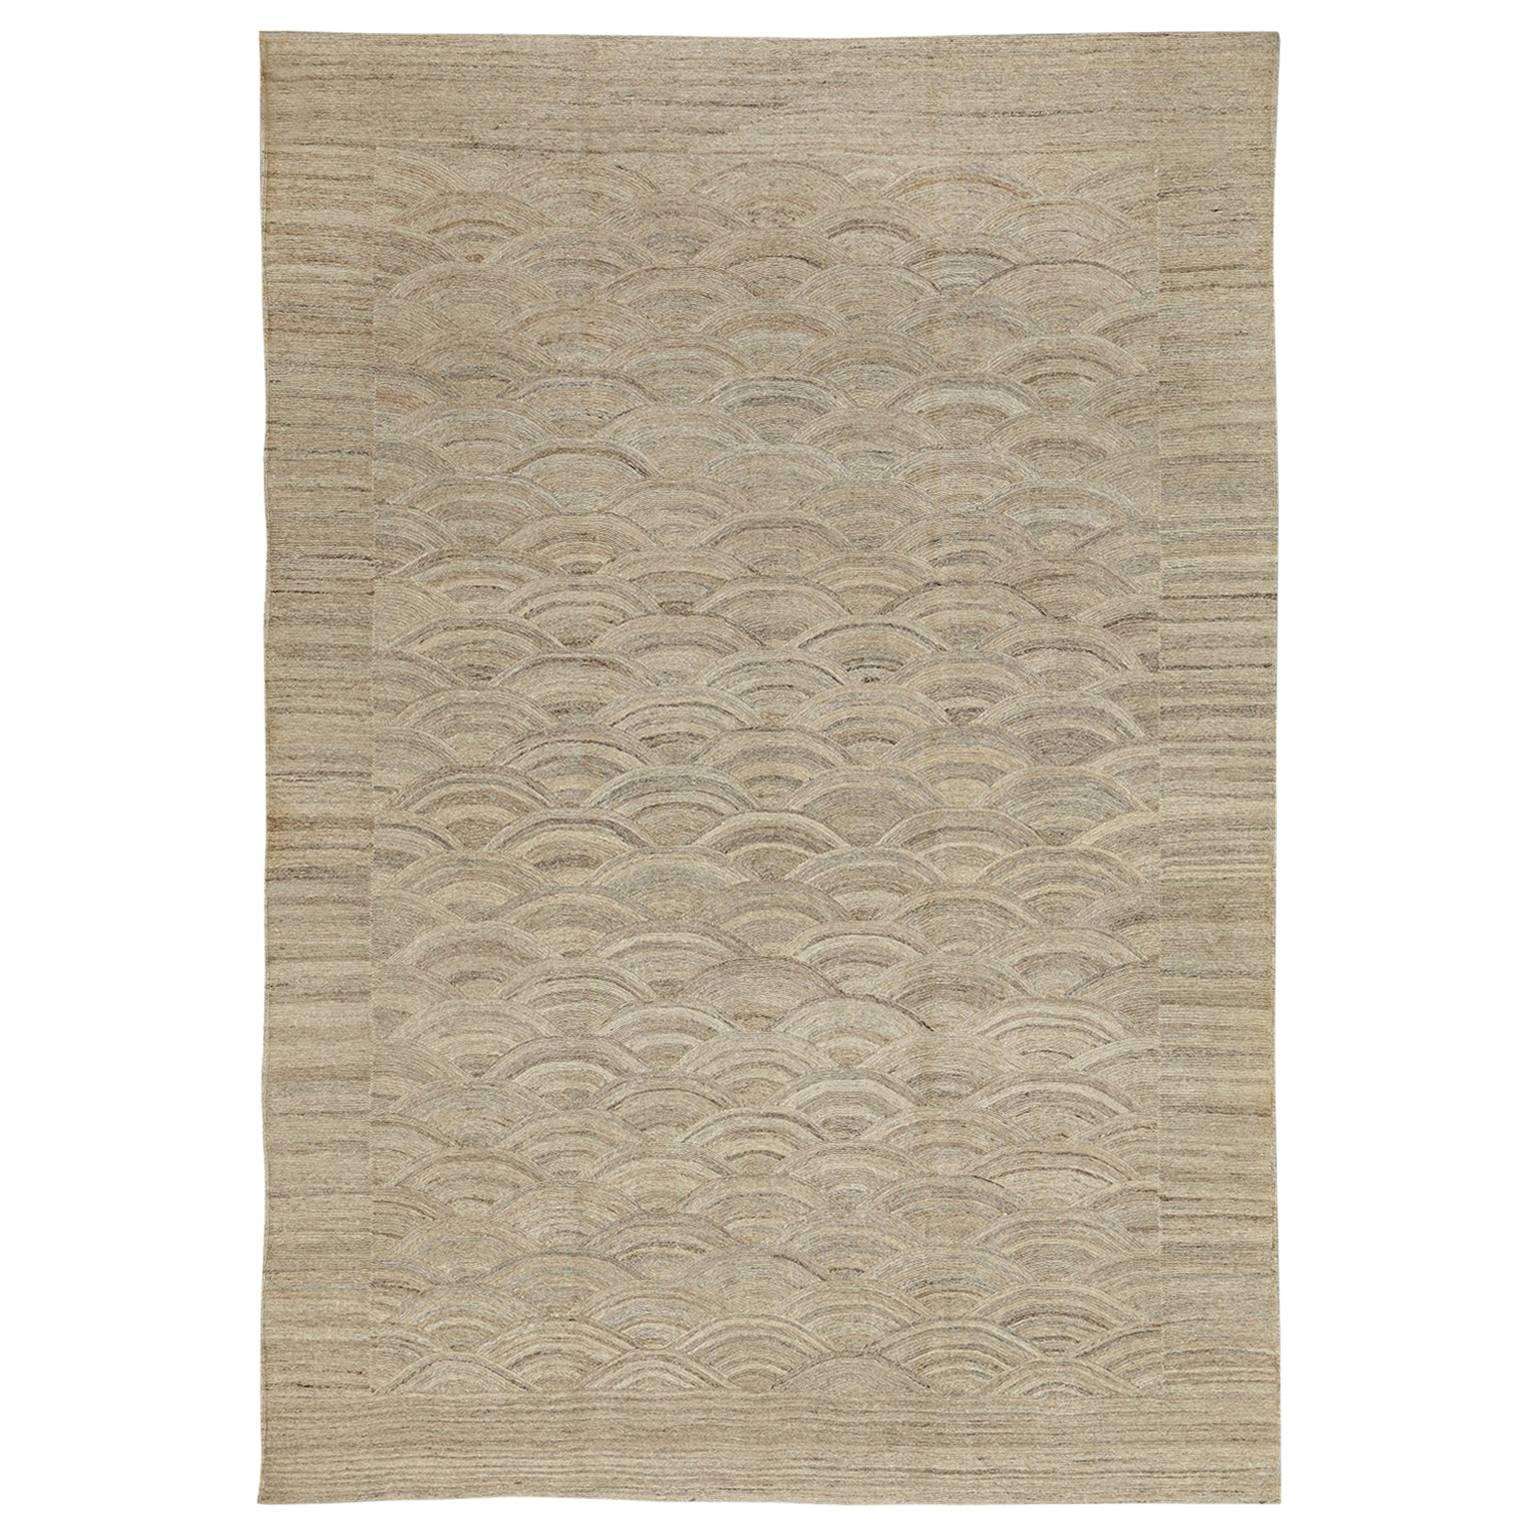 Orley Shabahang Signature Flat-Weave Carpet in Pure Handspun Wool, Undyed